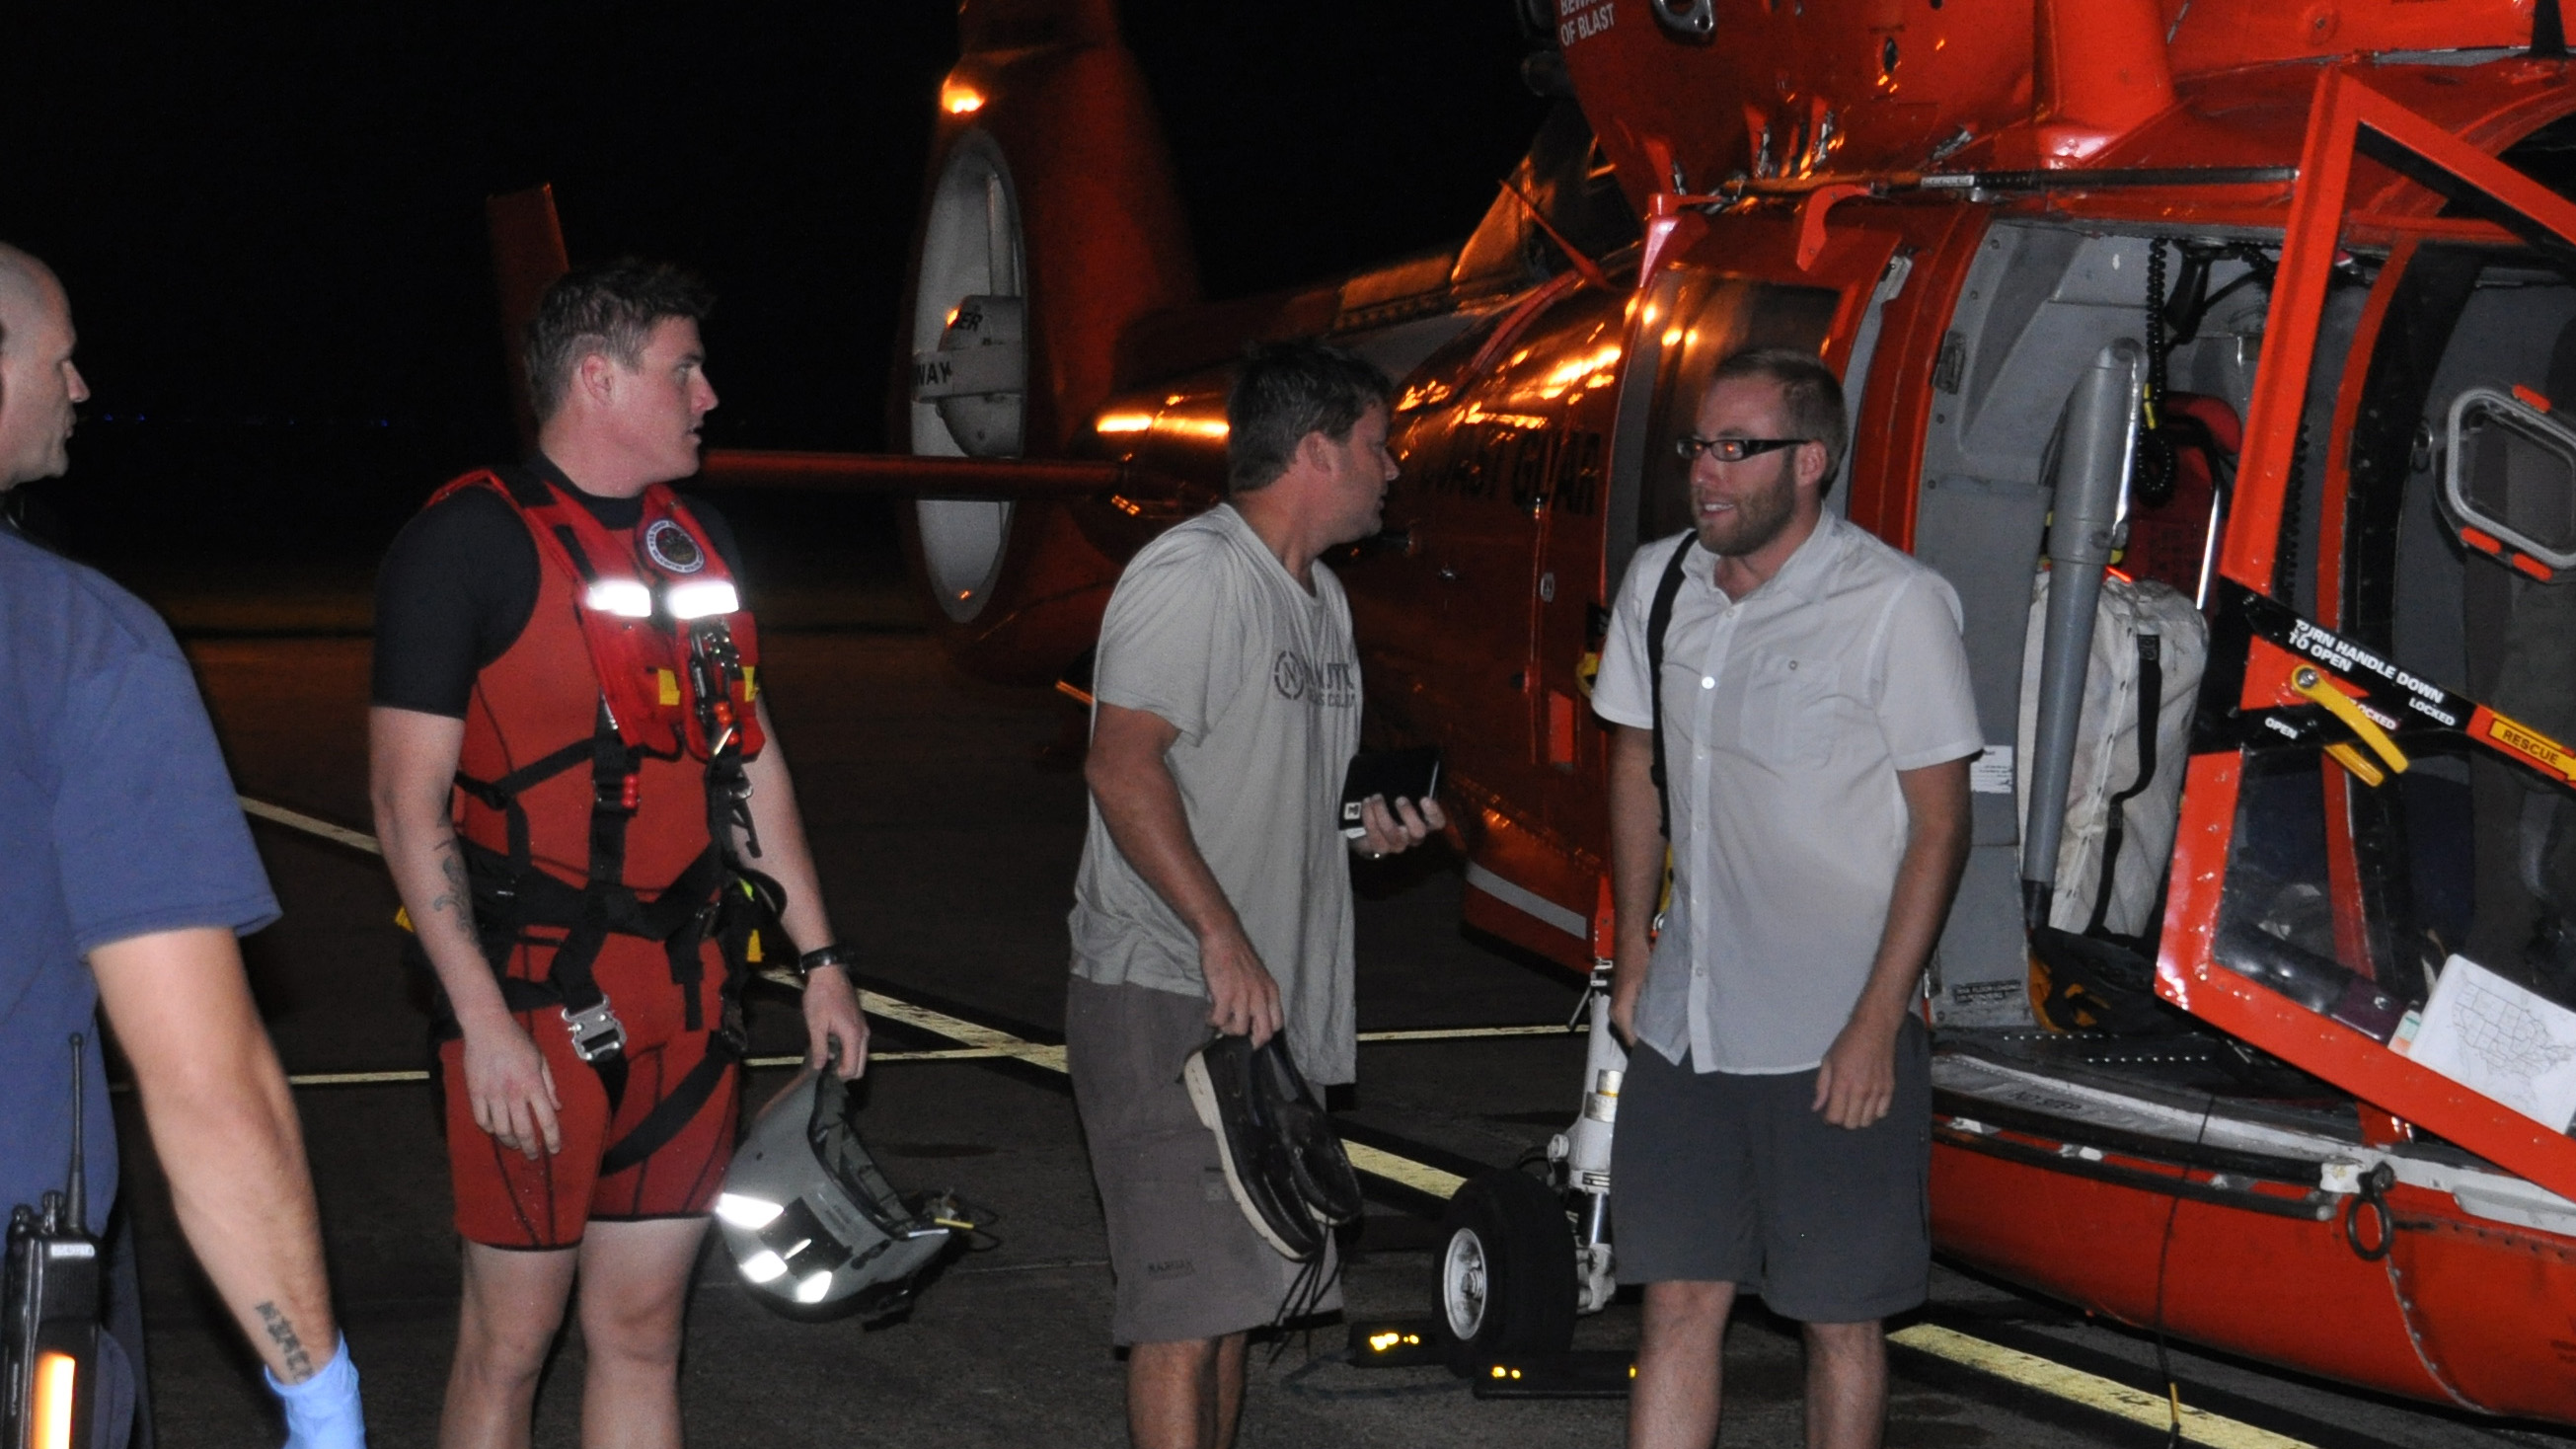 Pilot Theodore R. Wright III, far right, and passenger Raymond Fosdick, second from right, were rescued by the U.S. Coast Guard after ditching in the Gulf of Mexico. Both men now stand accused of fraud. Coast Guard photo.